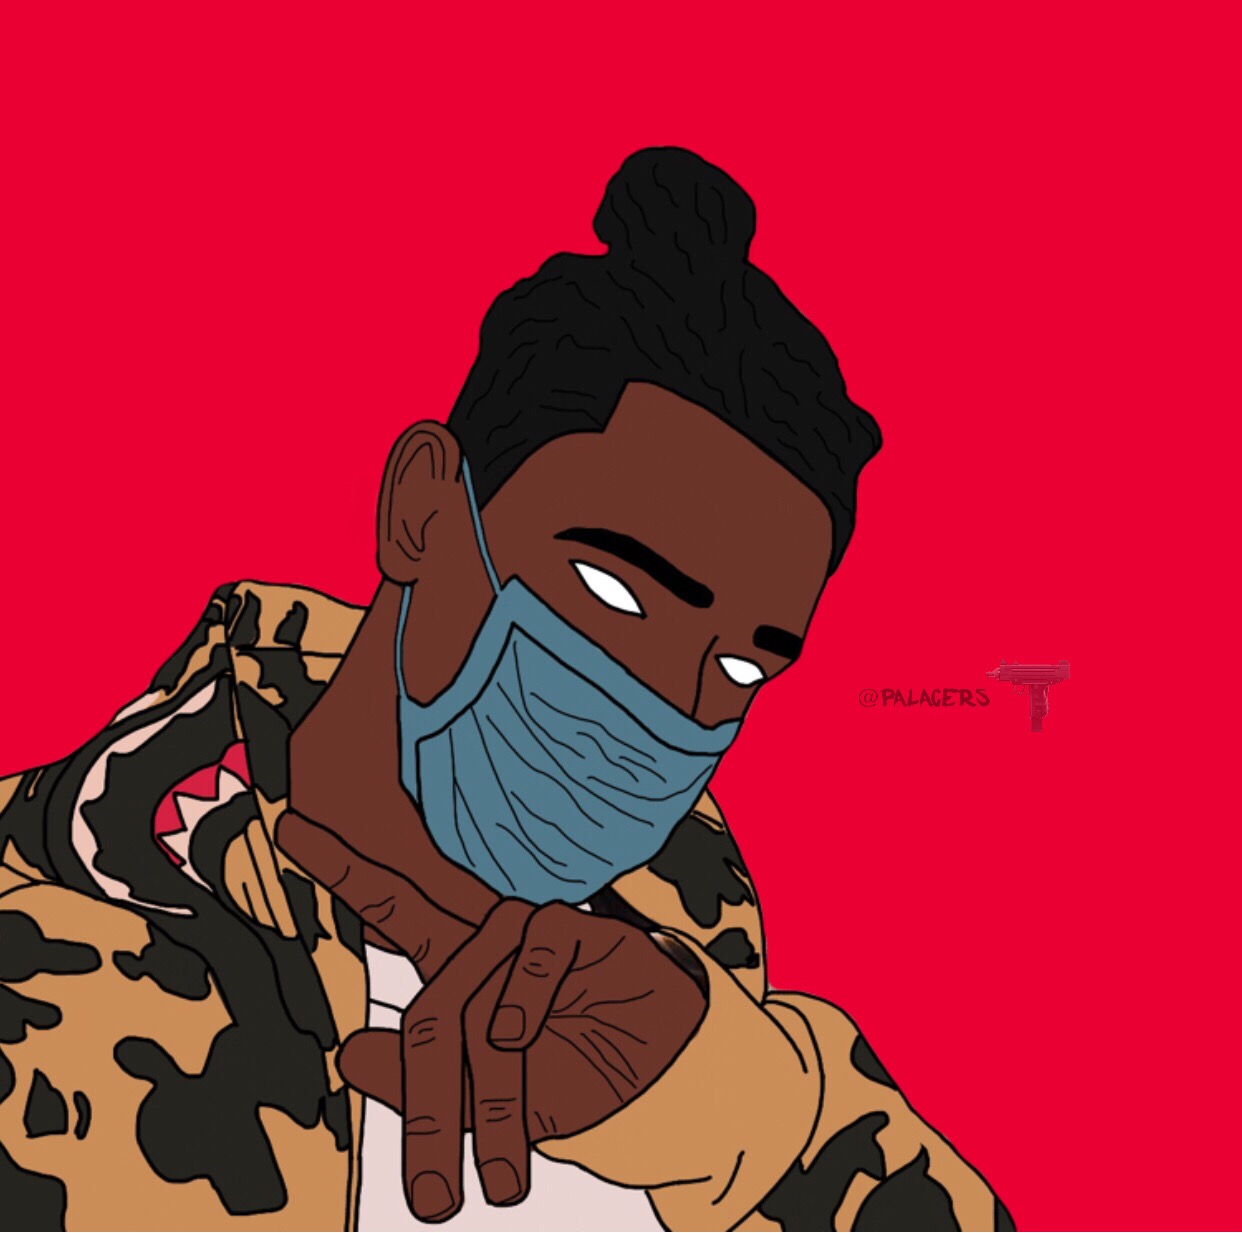 Image Bape Bape Bape Bathingape Bape 193219879000202 additionally 36031 together with Bw7 Simpson Series further Bape Shark Wallpaper together with 1. on dope cartoon characters wearing supreme